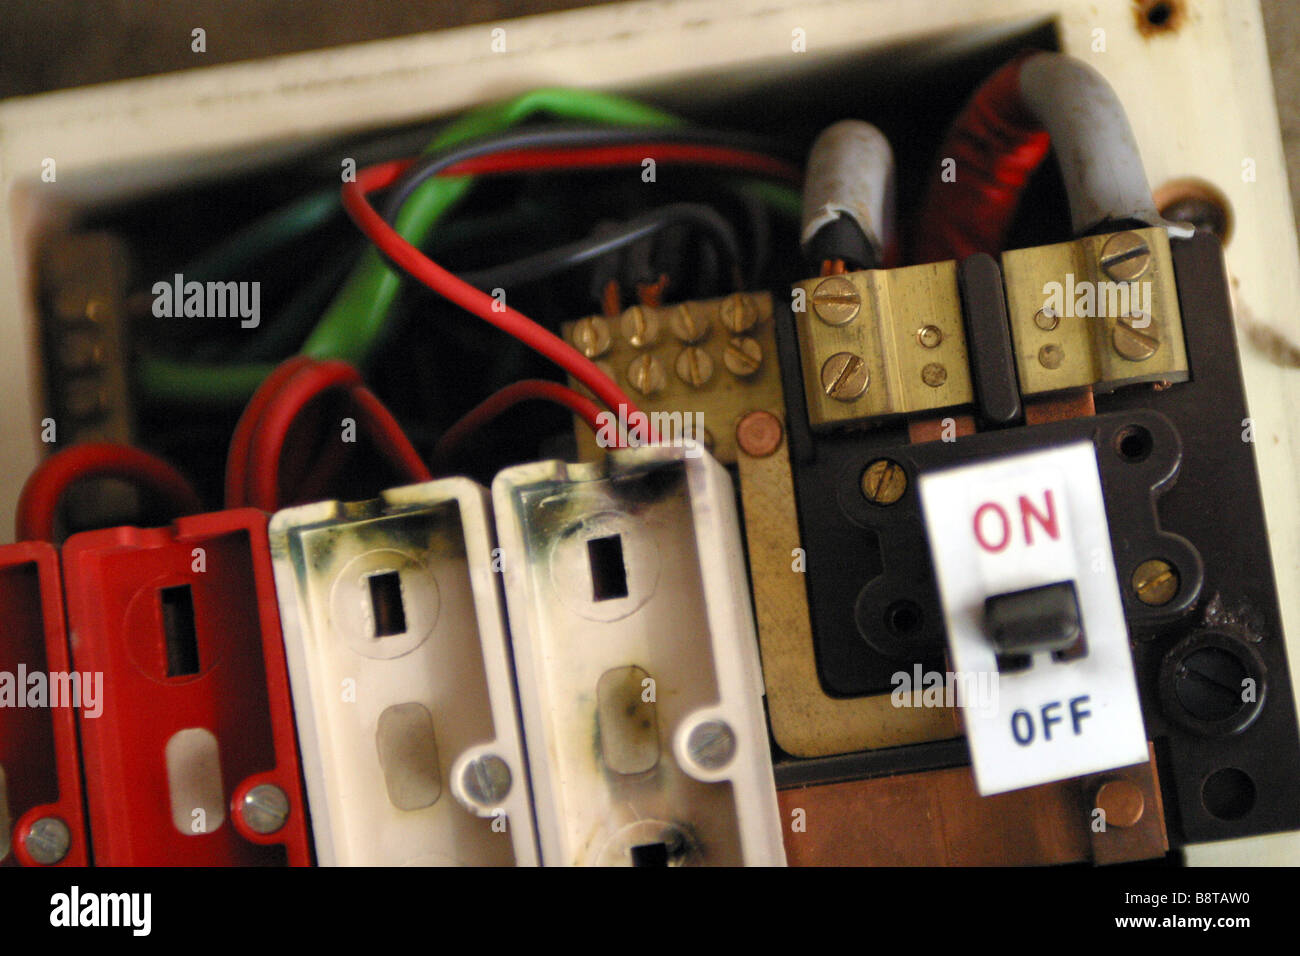 consumer unit box electrical fuse box old wire fuse type in a 1970s B8TAW0 fuse box in house stock photo, royalty free image 27195372 alamy house fuse box wiring diagram at bayanpartner.co